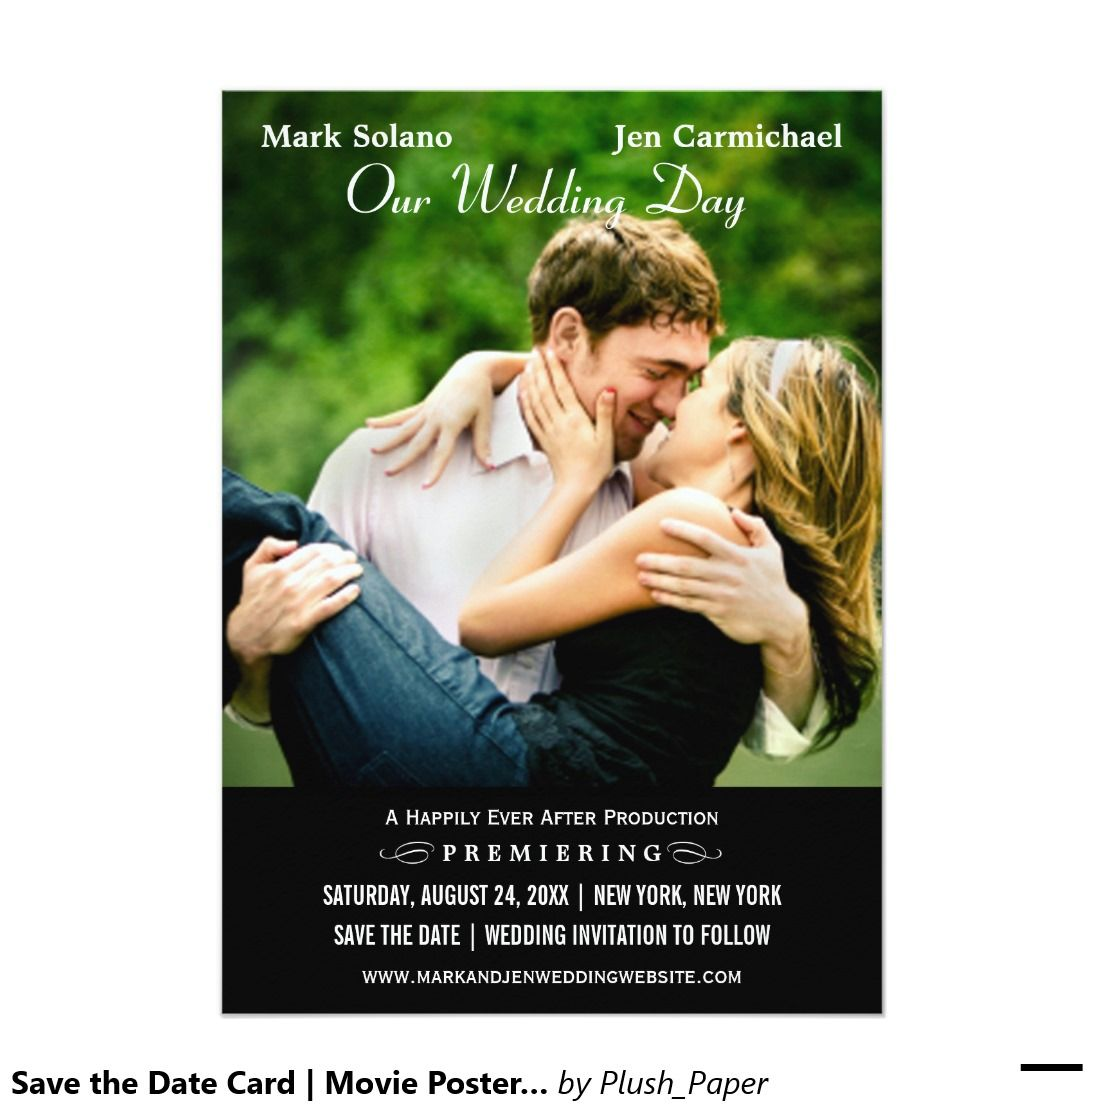 Zazzle poster design - Save The Date Card Movie Poster Design